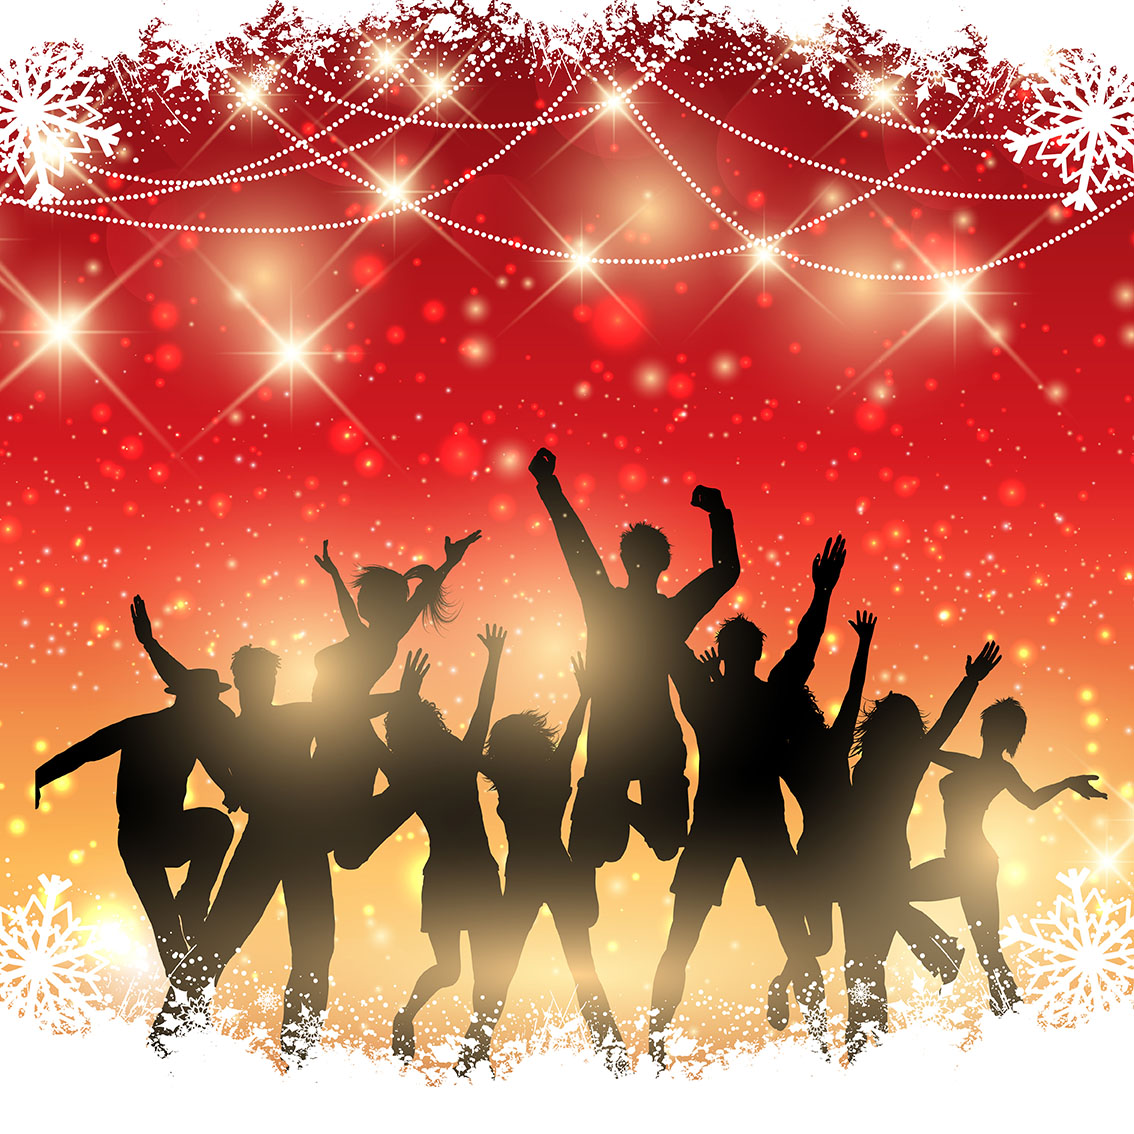 Christmas Holiday Party: Christmas Party Background